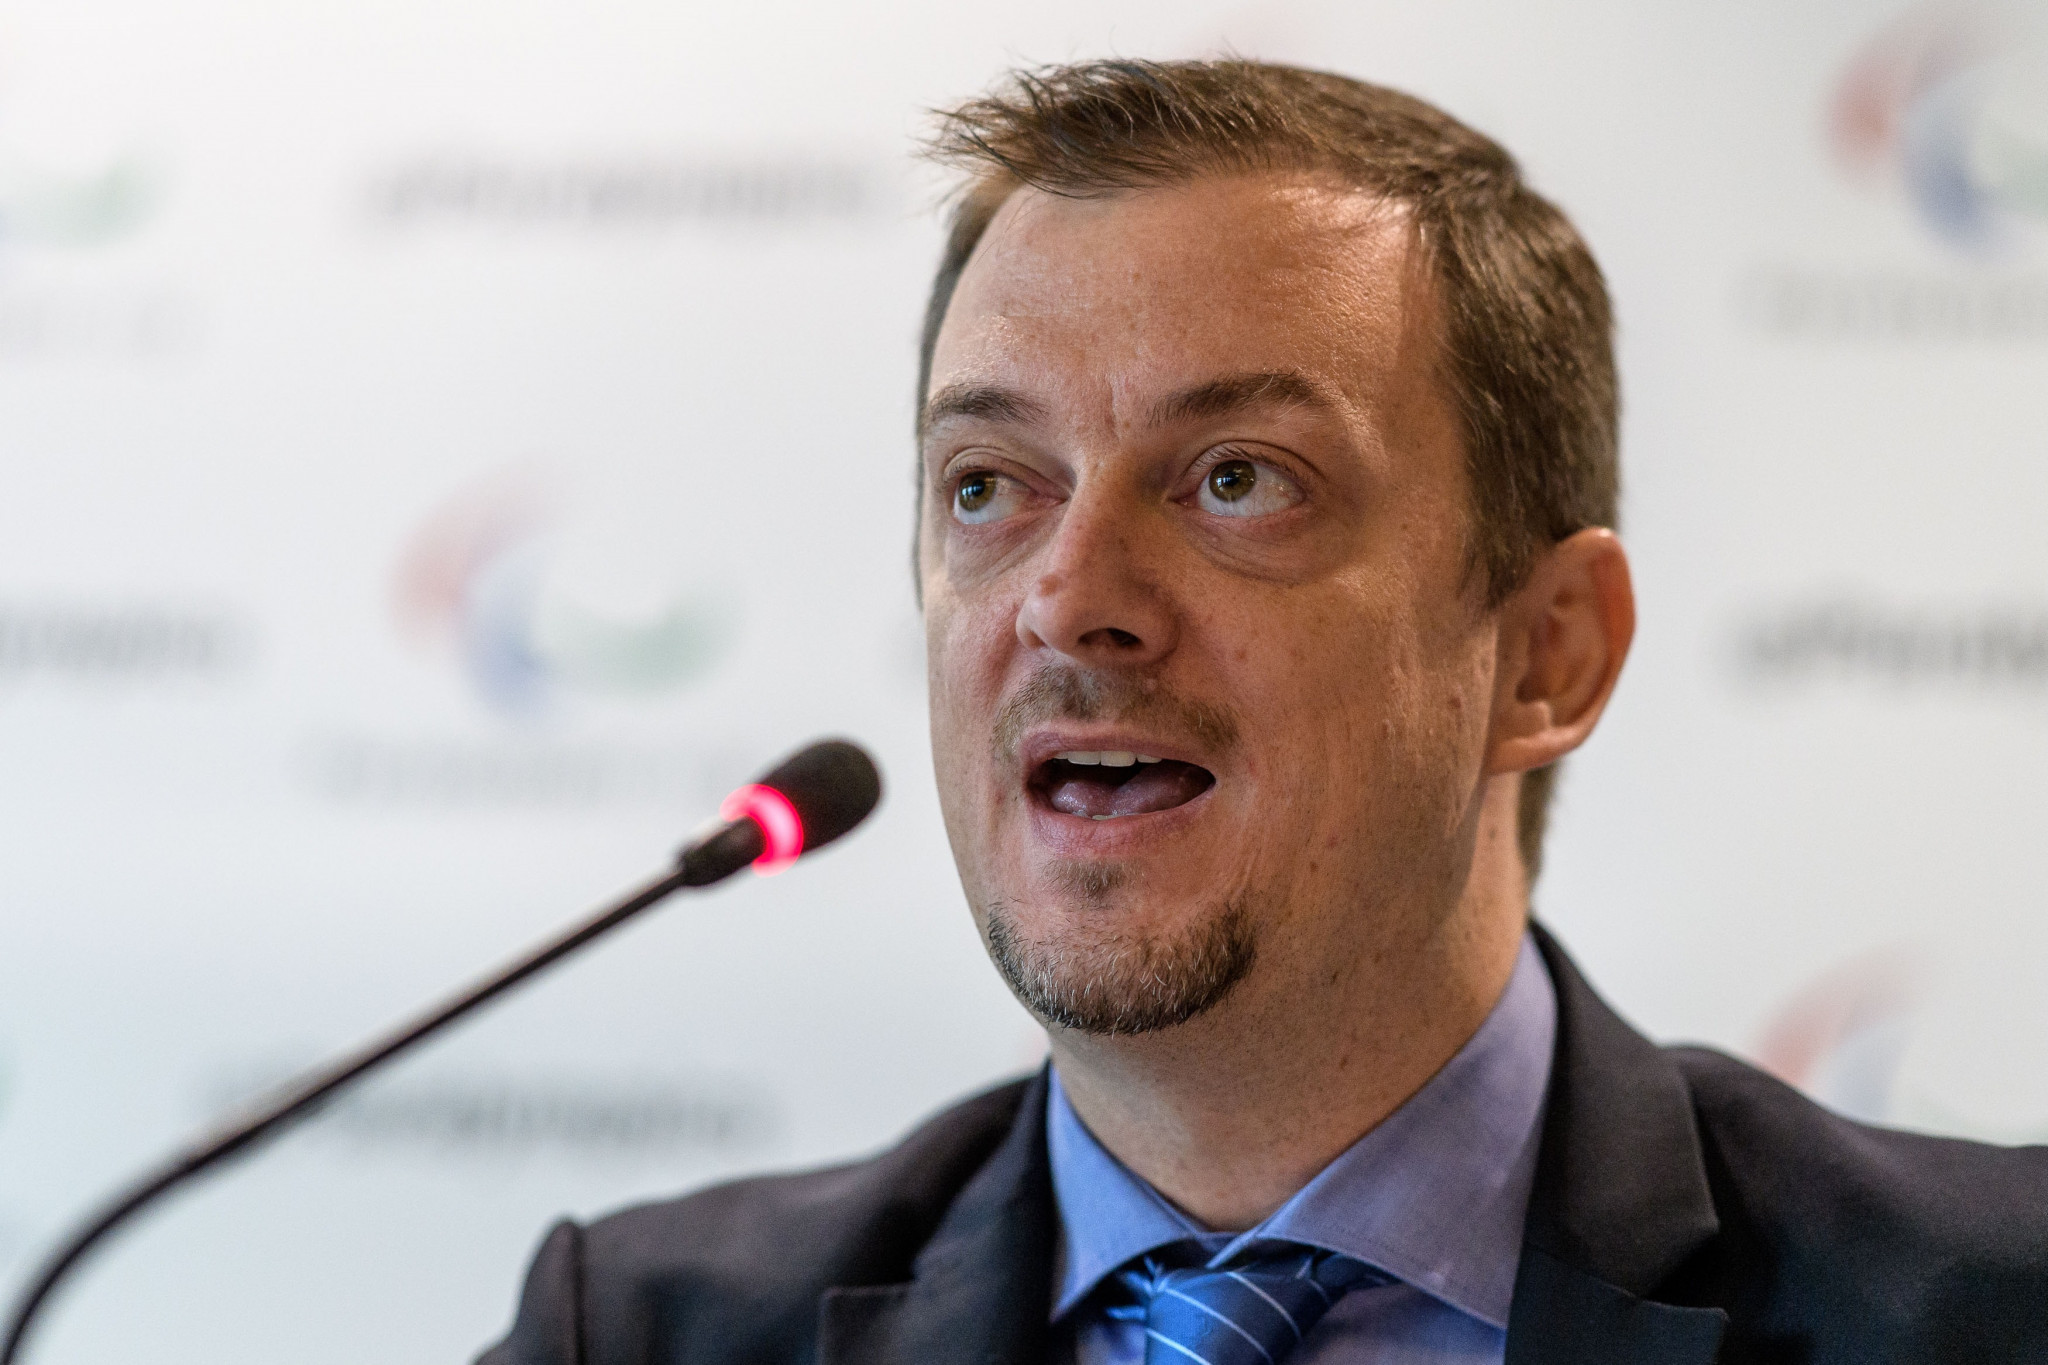 IPC President Andrew Parsons says the organisation has implemented its most comprehensive anti-doping programme to date for the Pyeongchang 2018 Winter Paralympics ©Getty Images